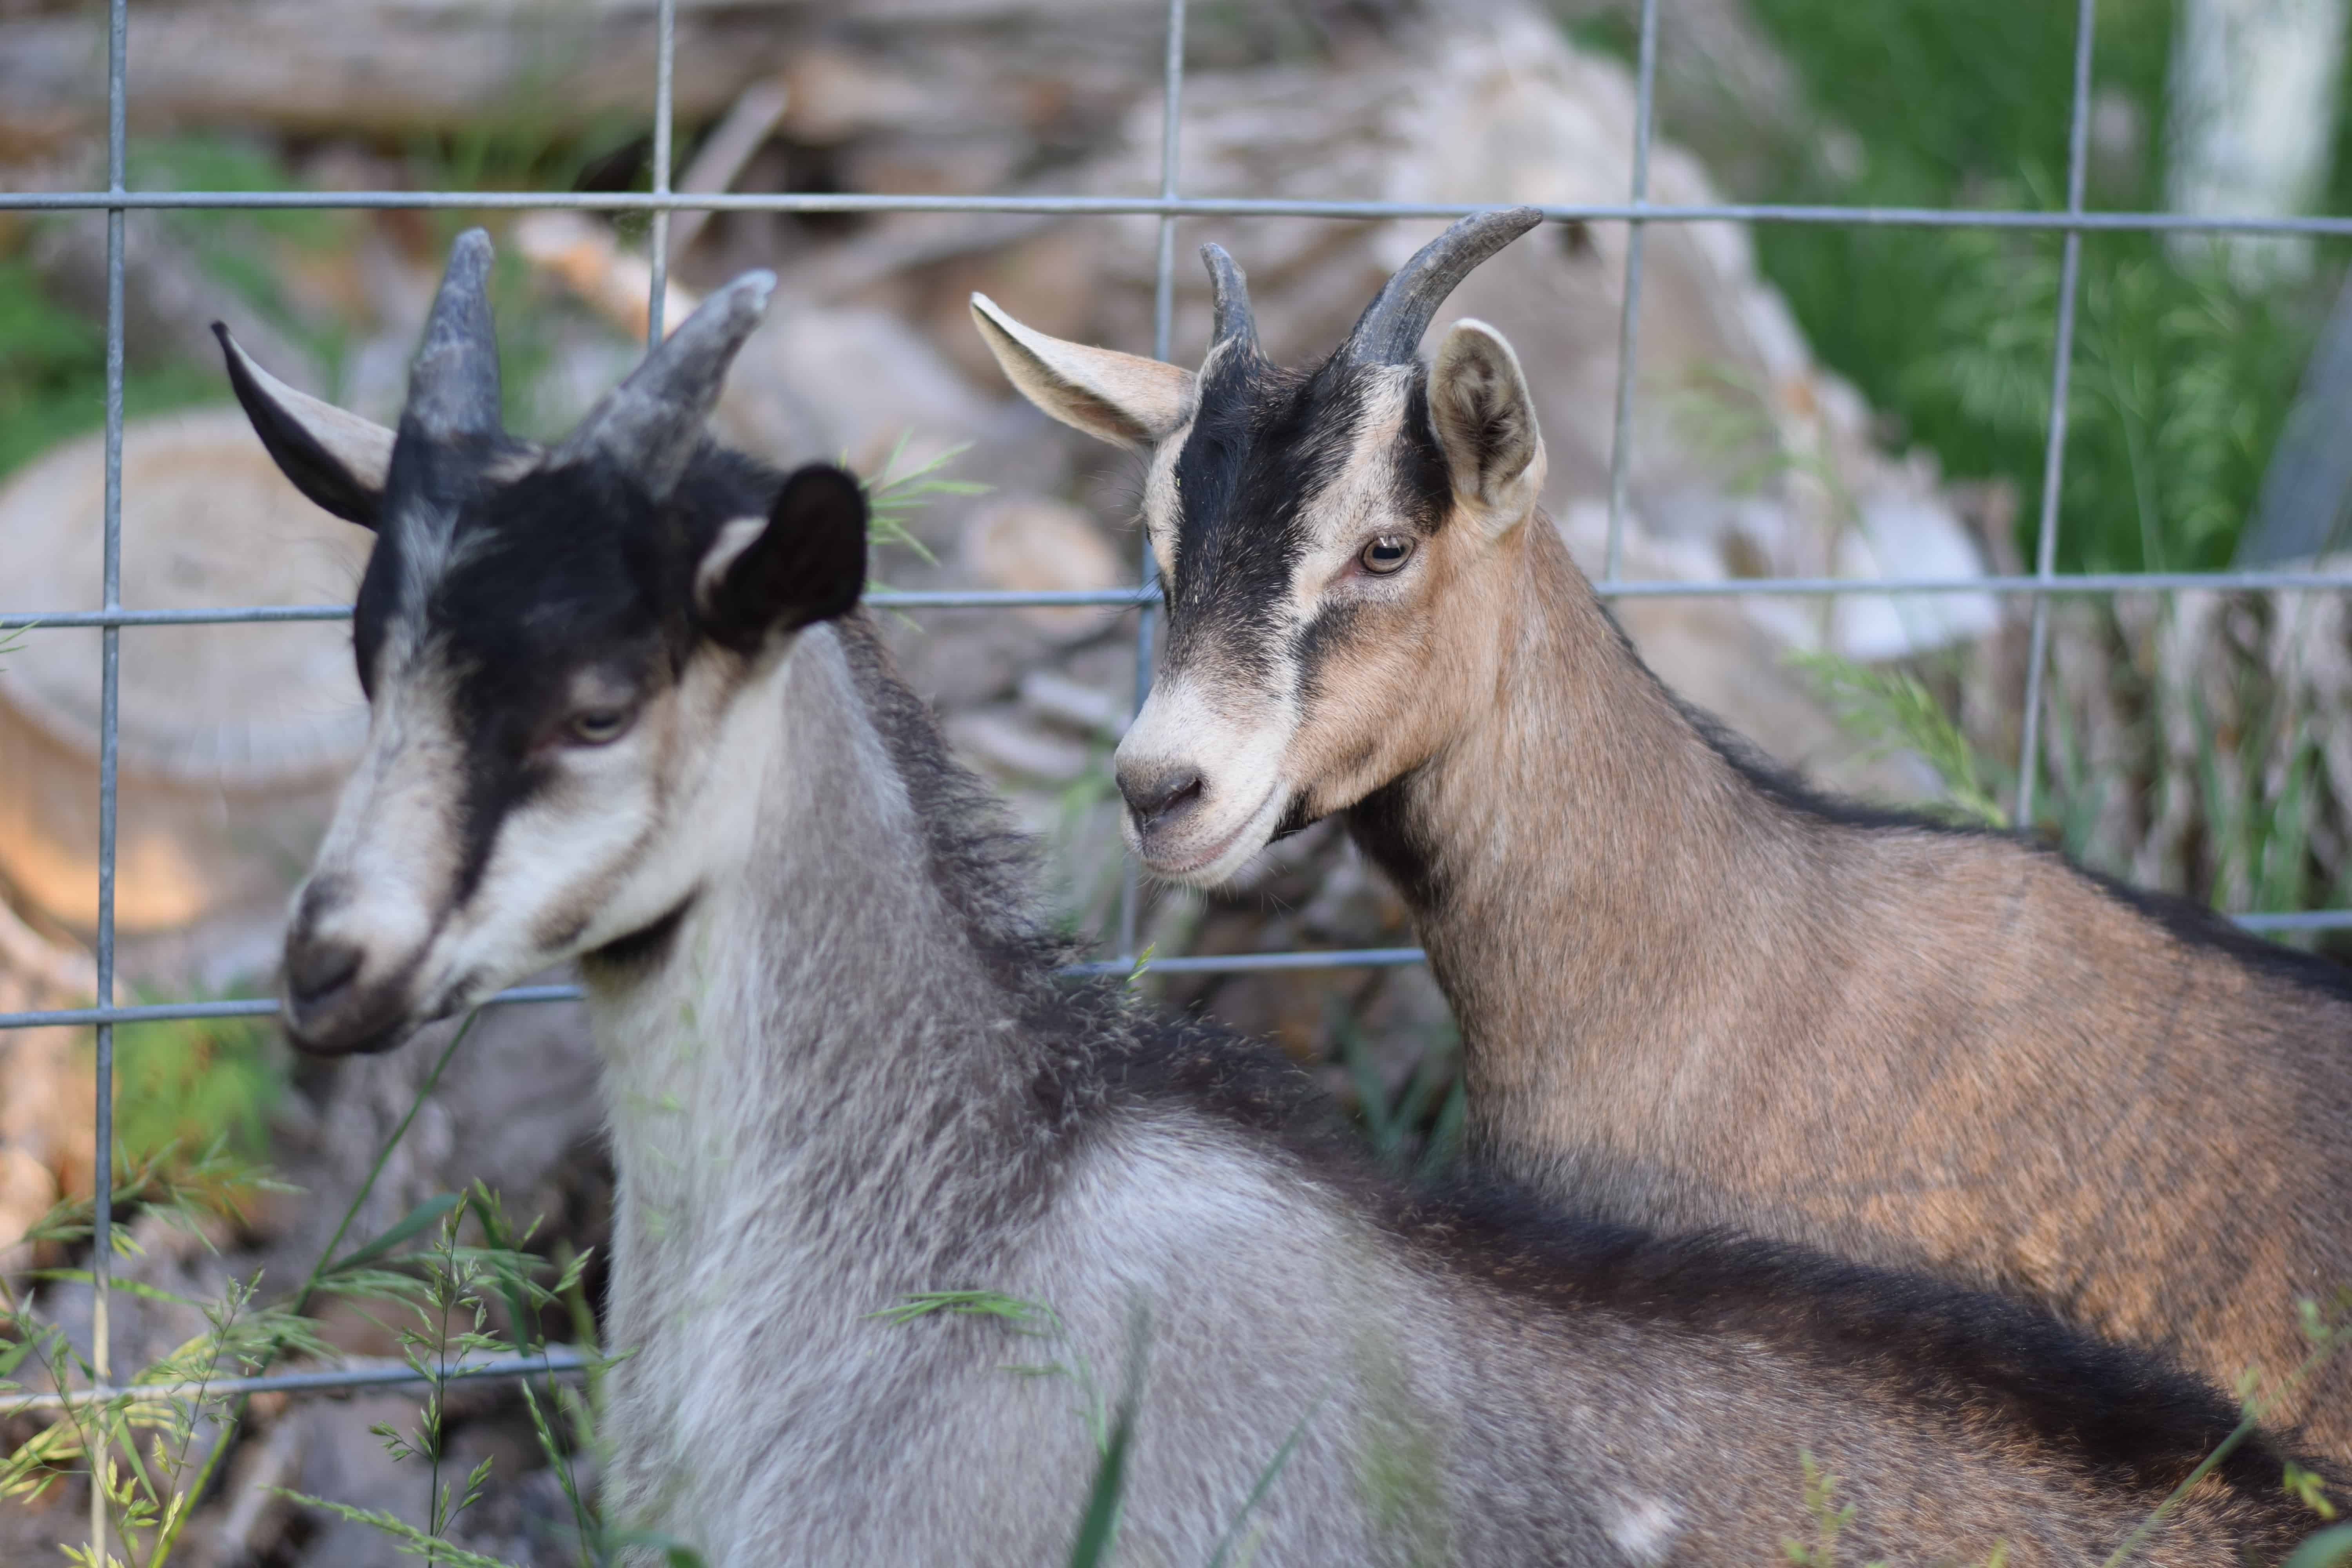 two goats standing next to a fence